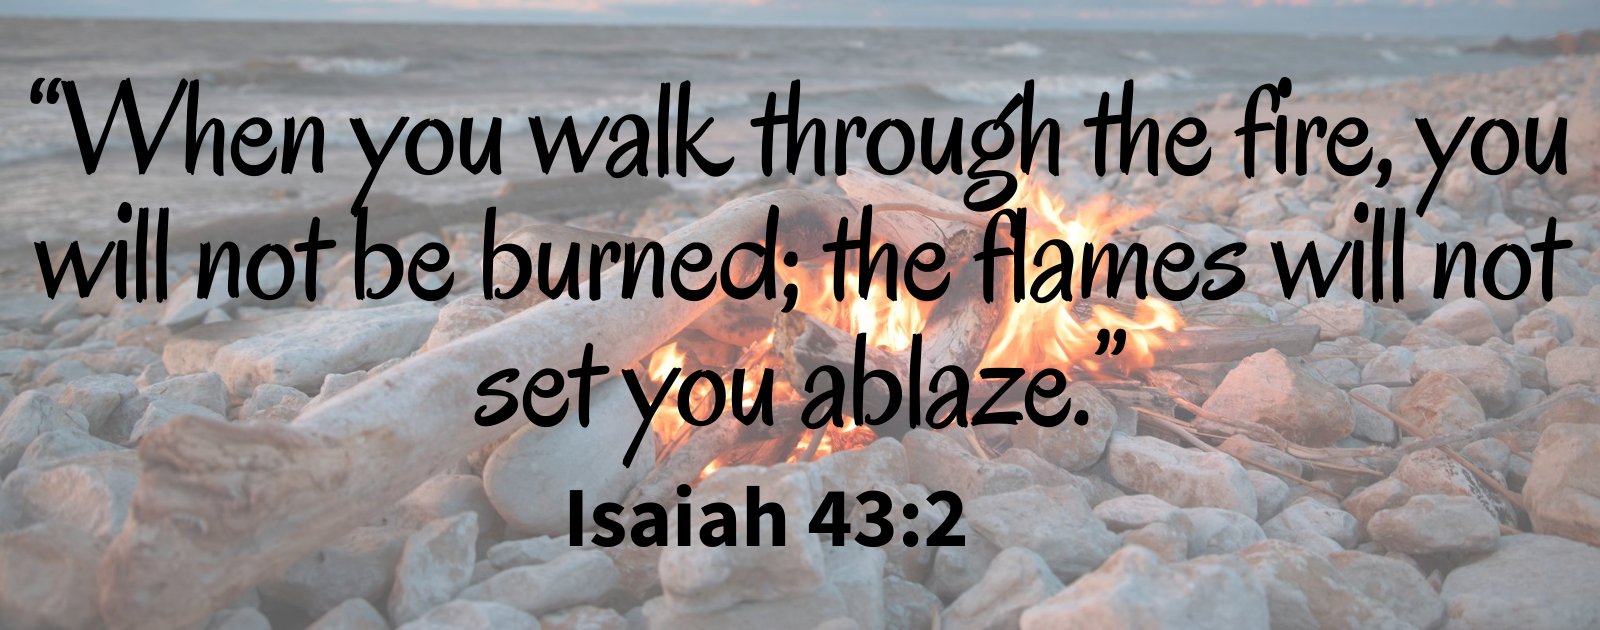 When you walk through the fire, you will not be burned; the flames will not set you ablaze